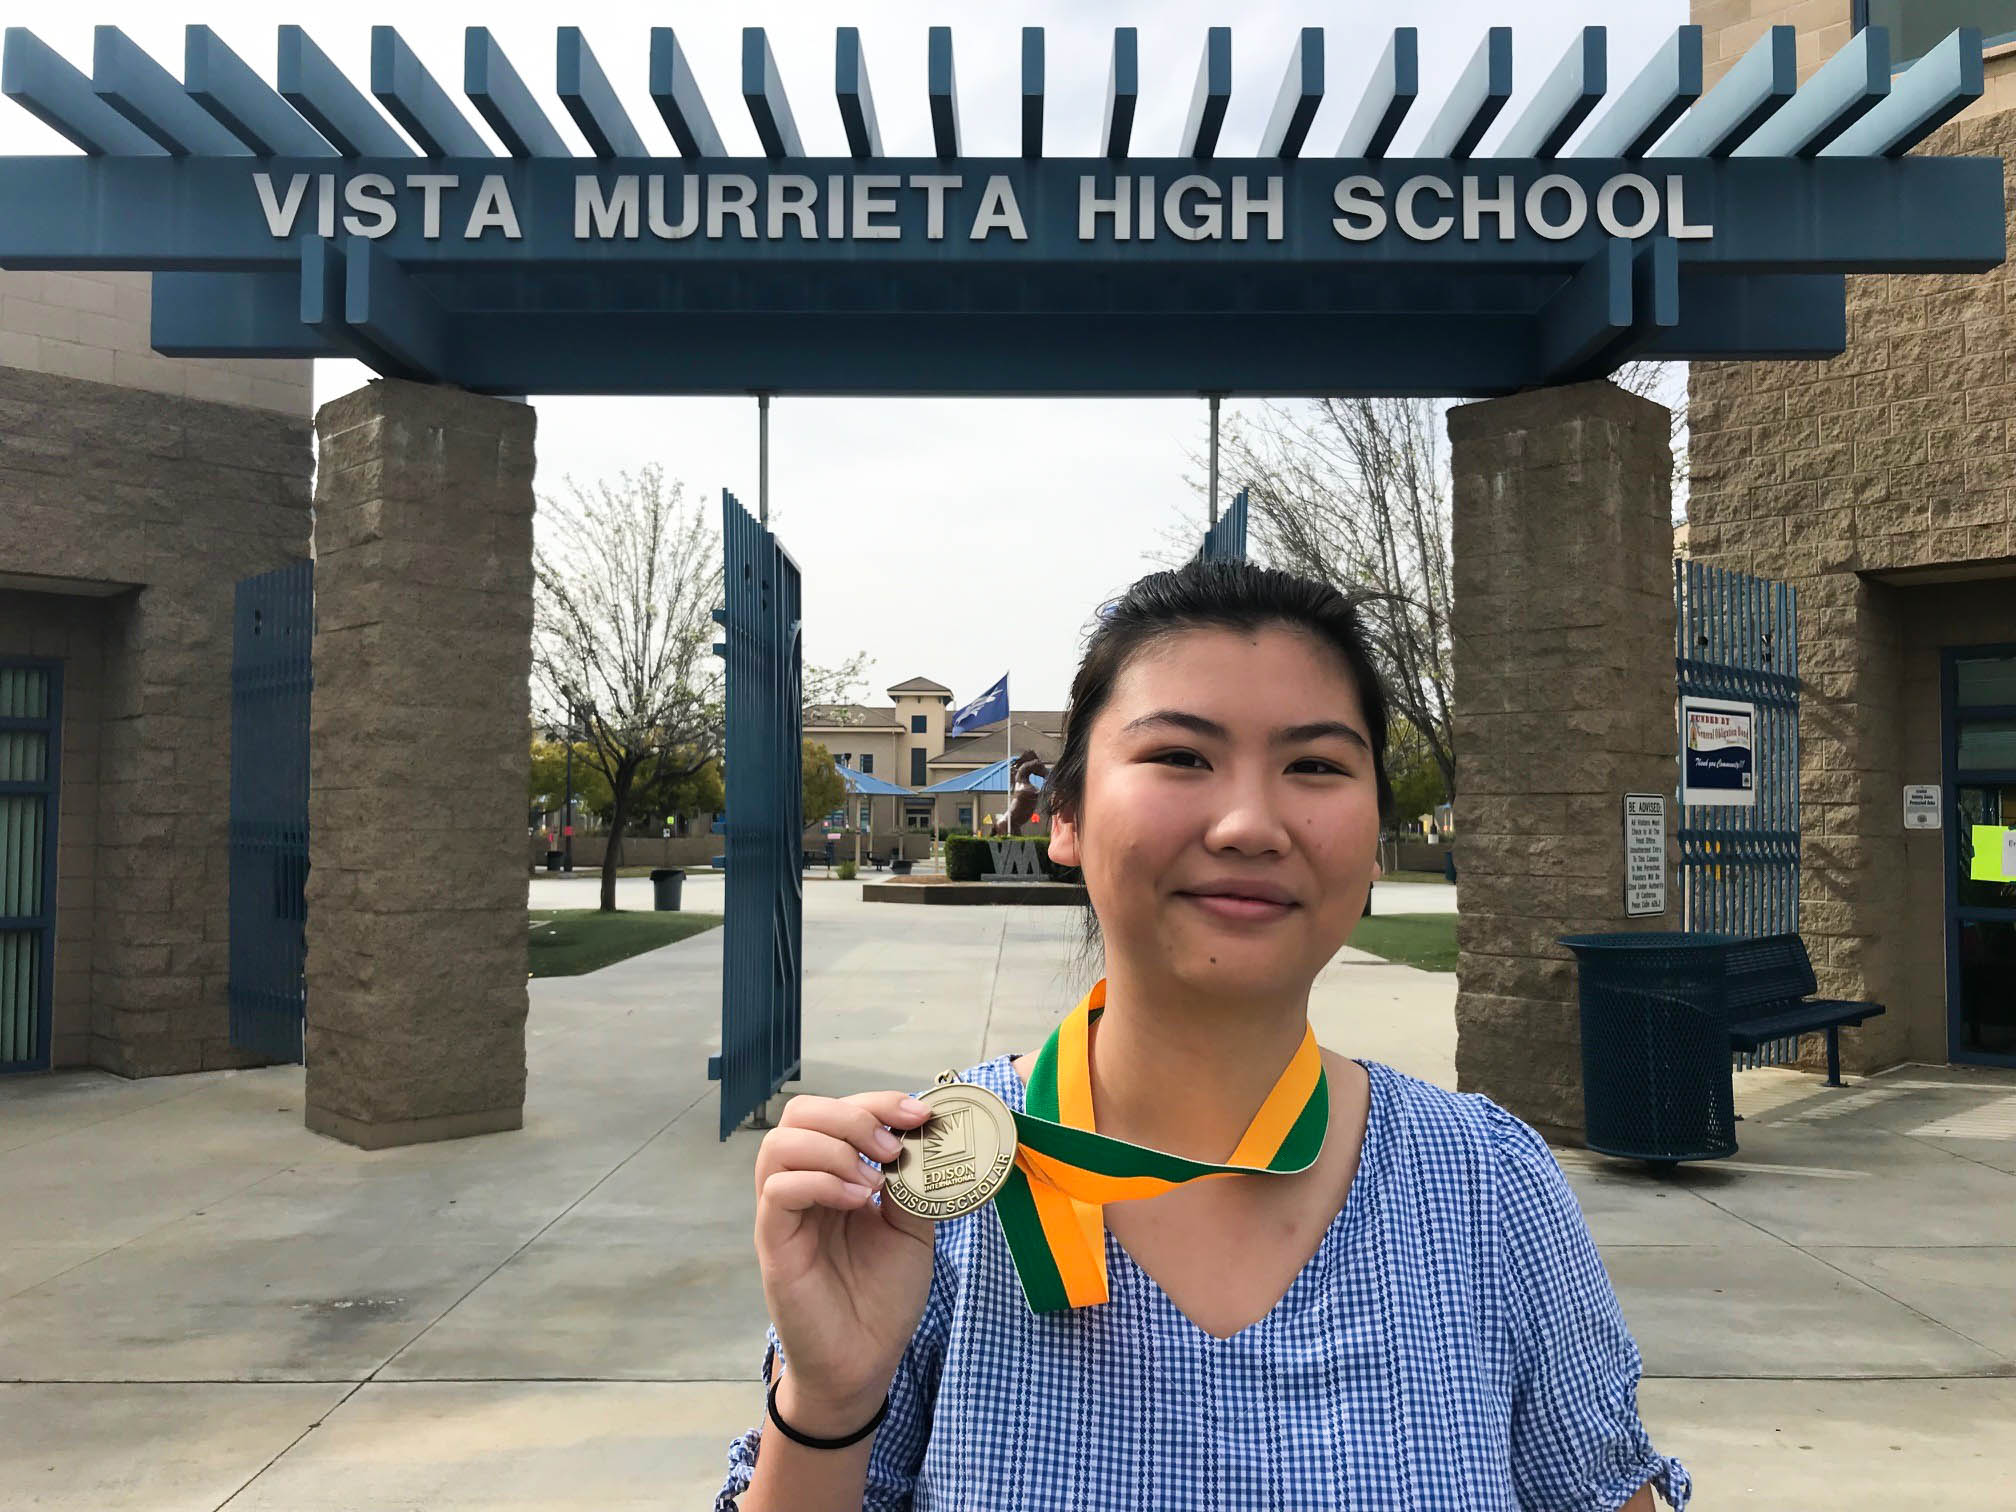 2019 Edison Scholar Carlie Lin at Vista Murrieta High School